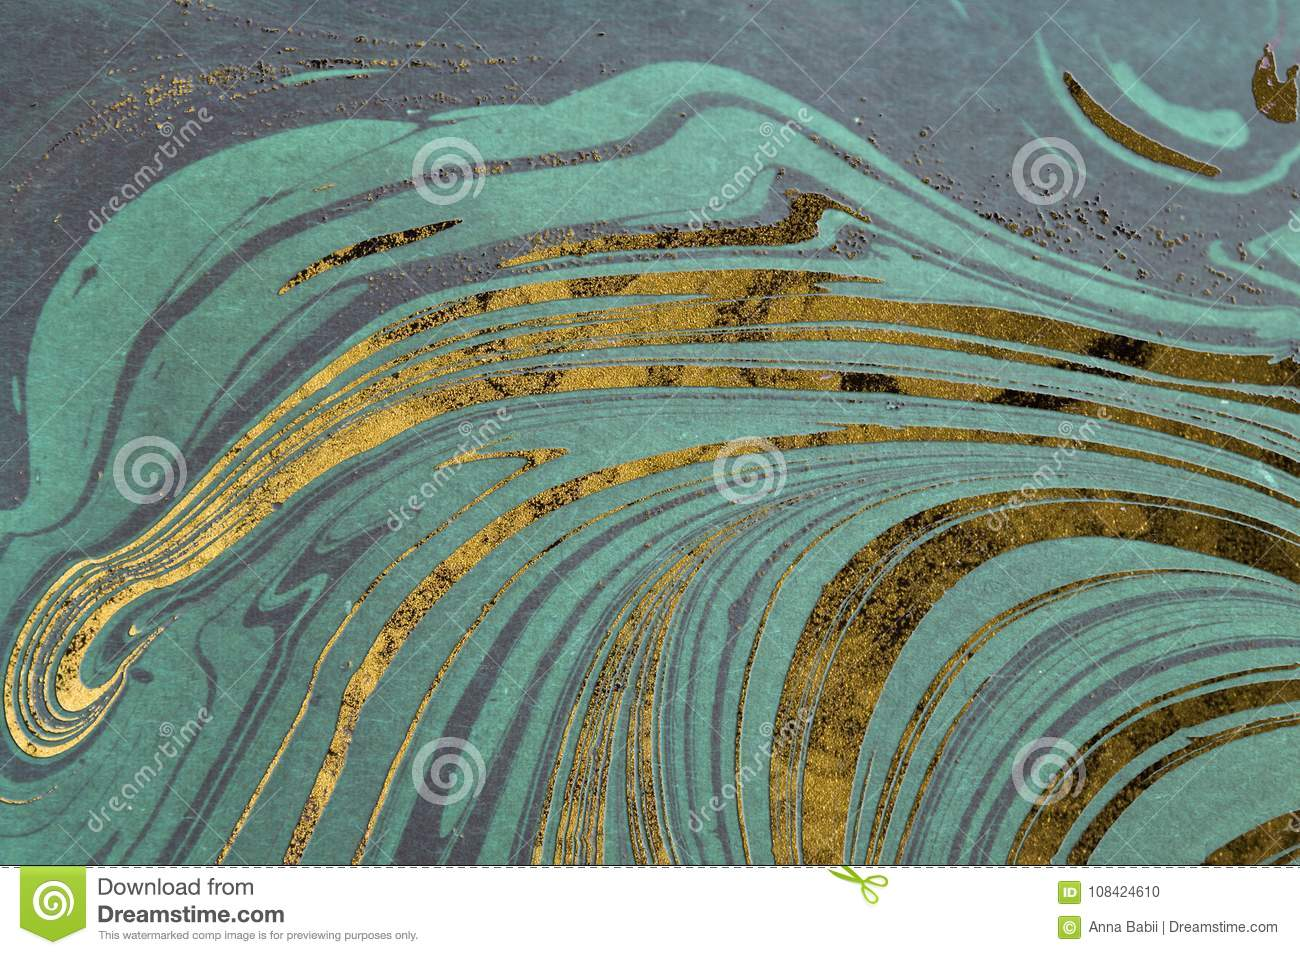 Ink marble texture. Ebru handmade wave background. Kraft paper surface. Unique art illustration. Liquid marbling texture